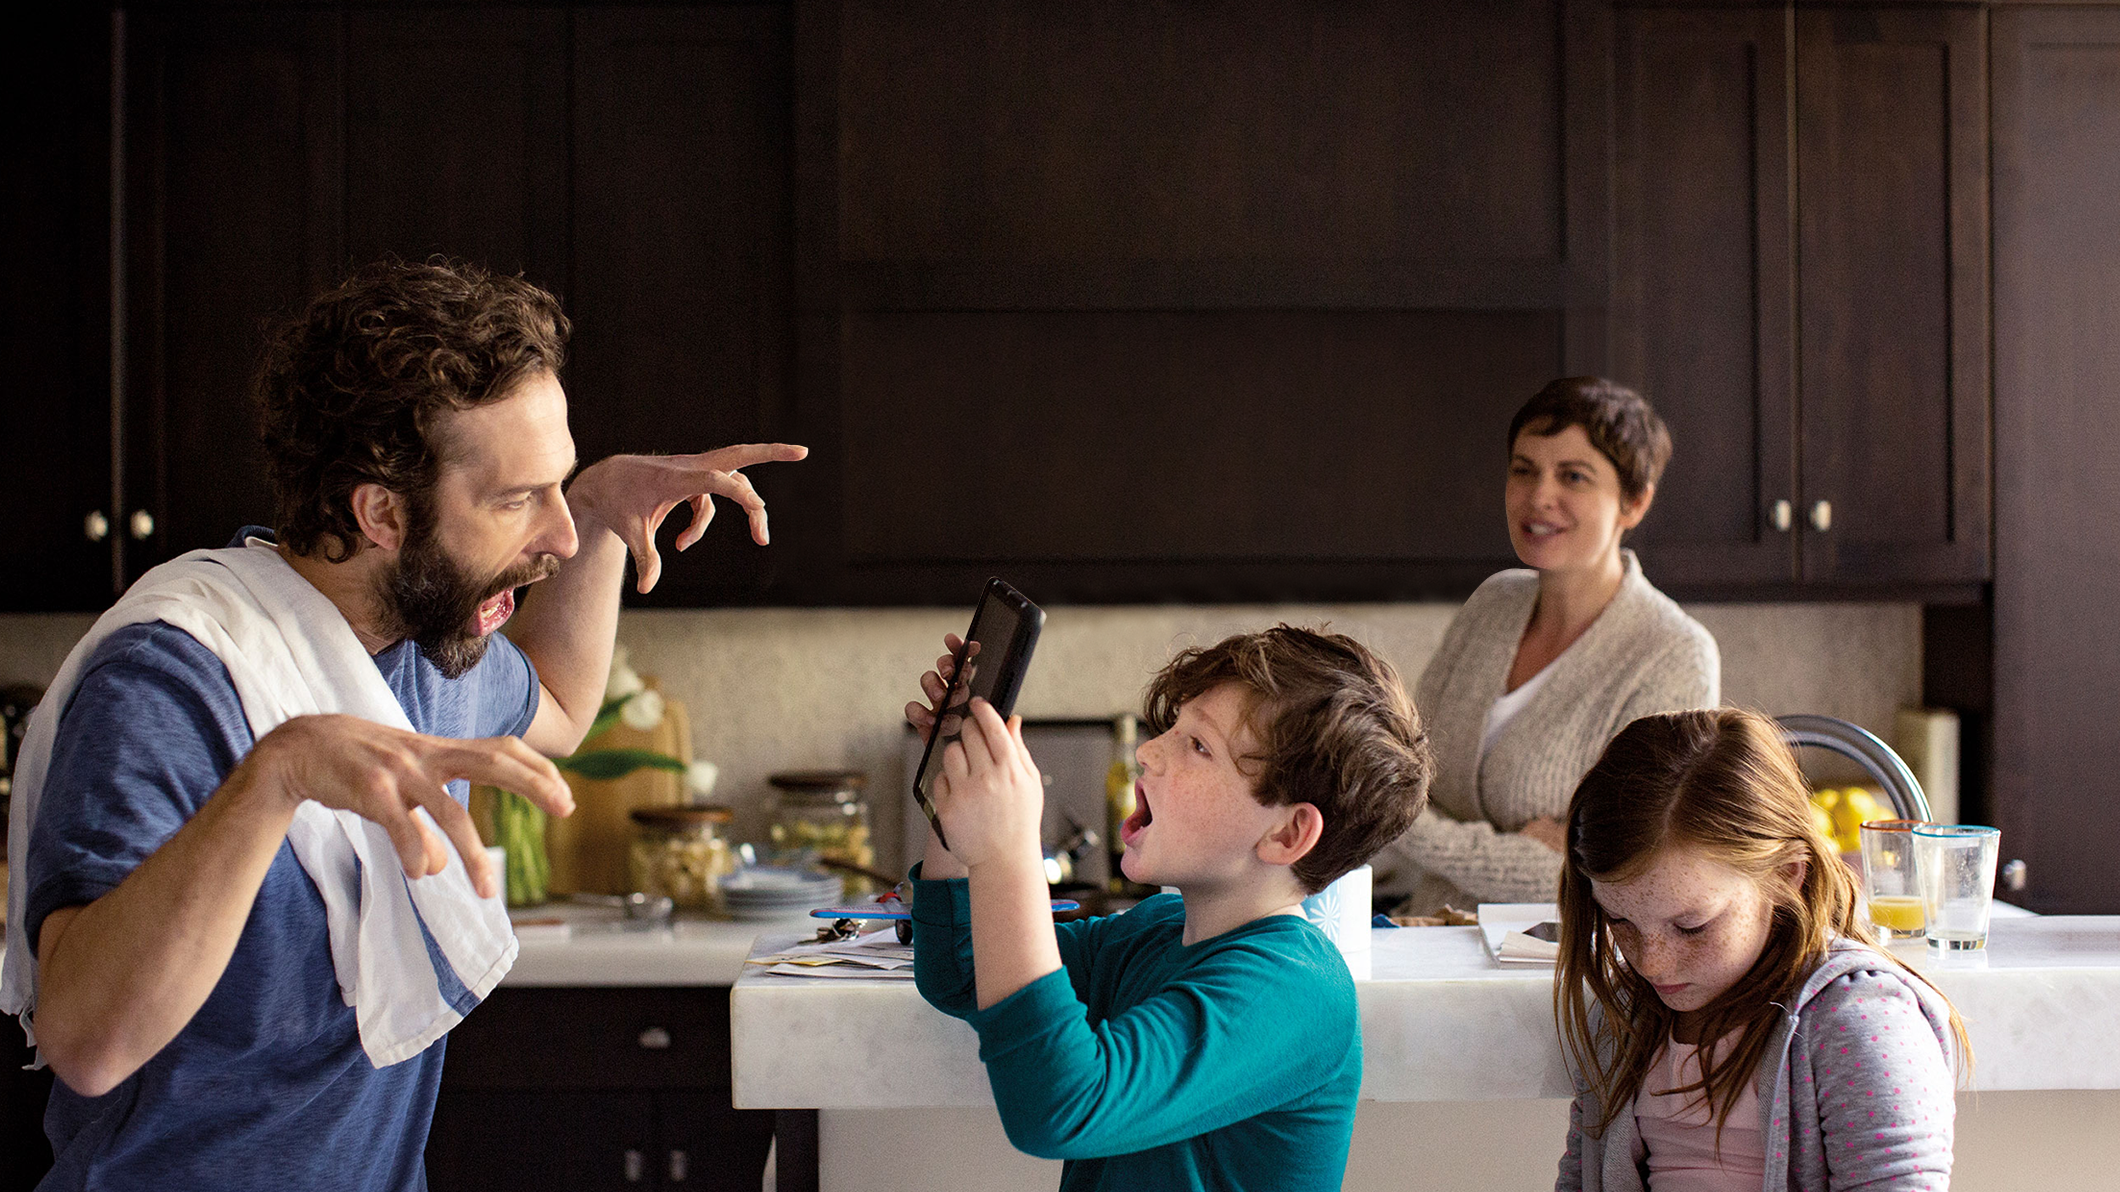 Two kids and their parents gather in a kitchen and take pictures with a tablet